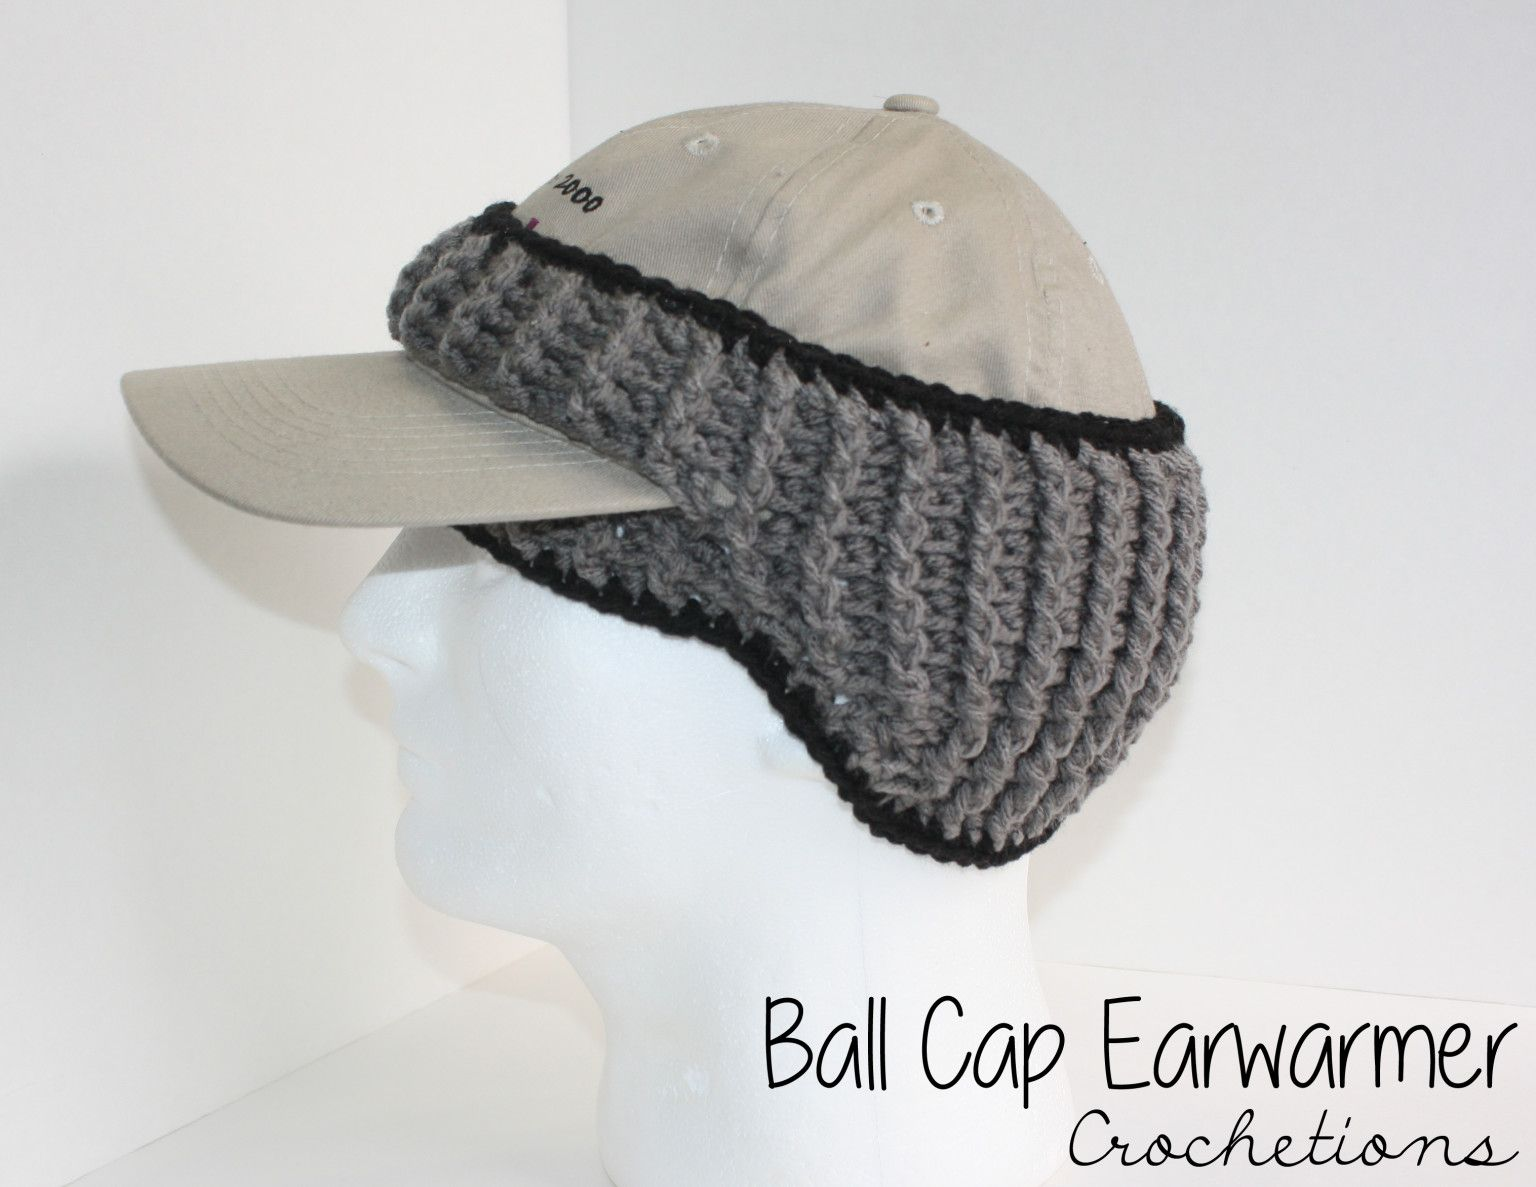 Handmade crochet headband for ball cap wearers! Great for winter weather to  keep those ears warm! 5bb4397e7af